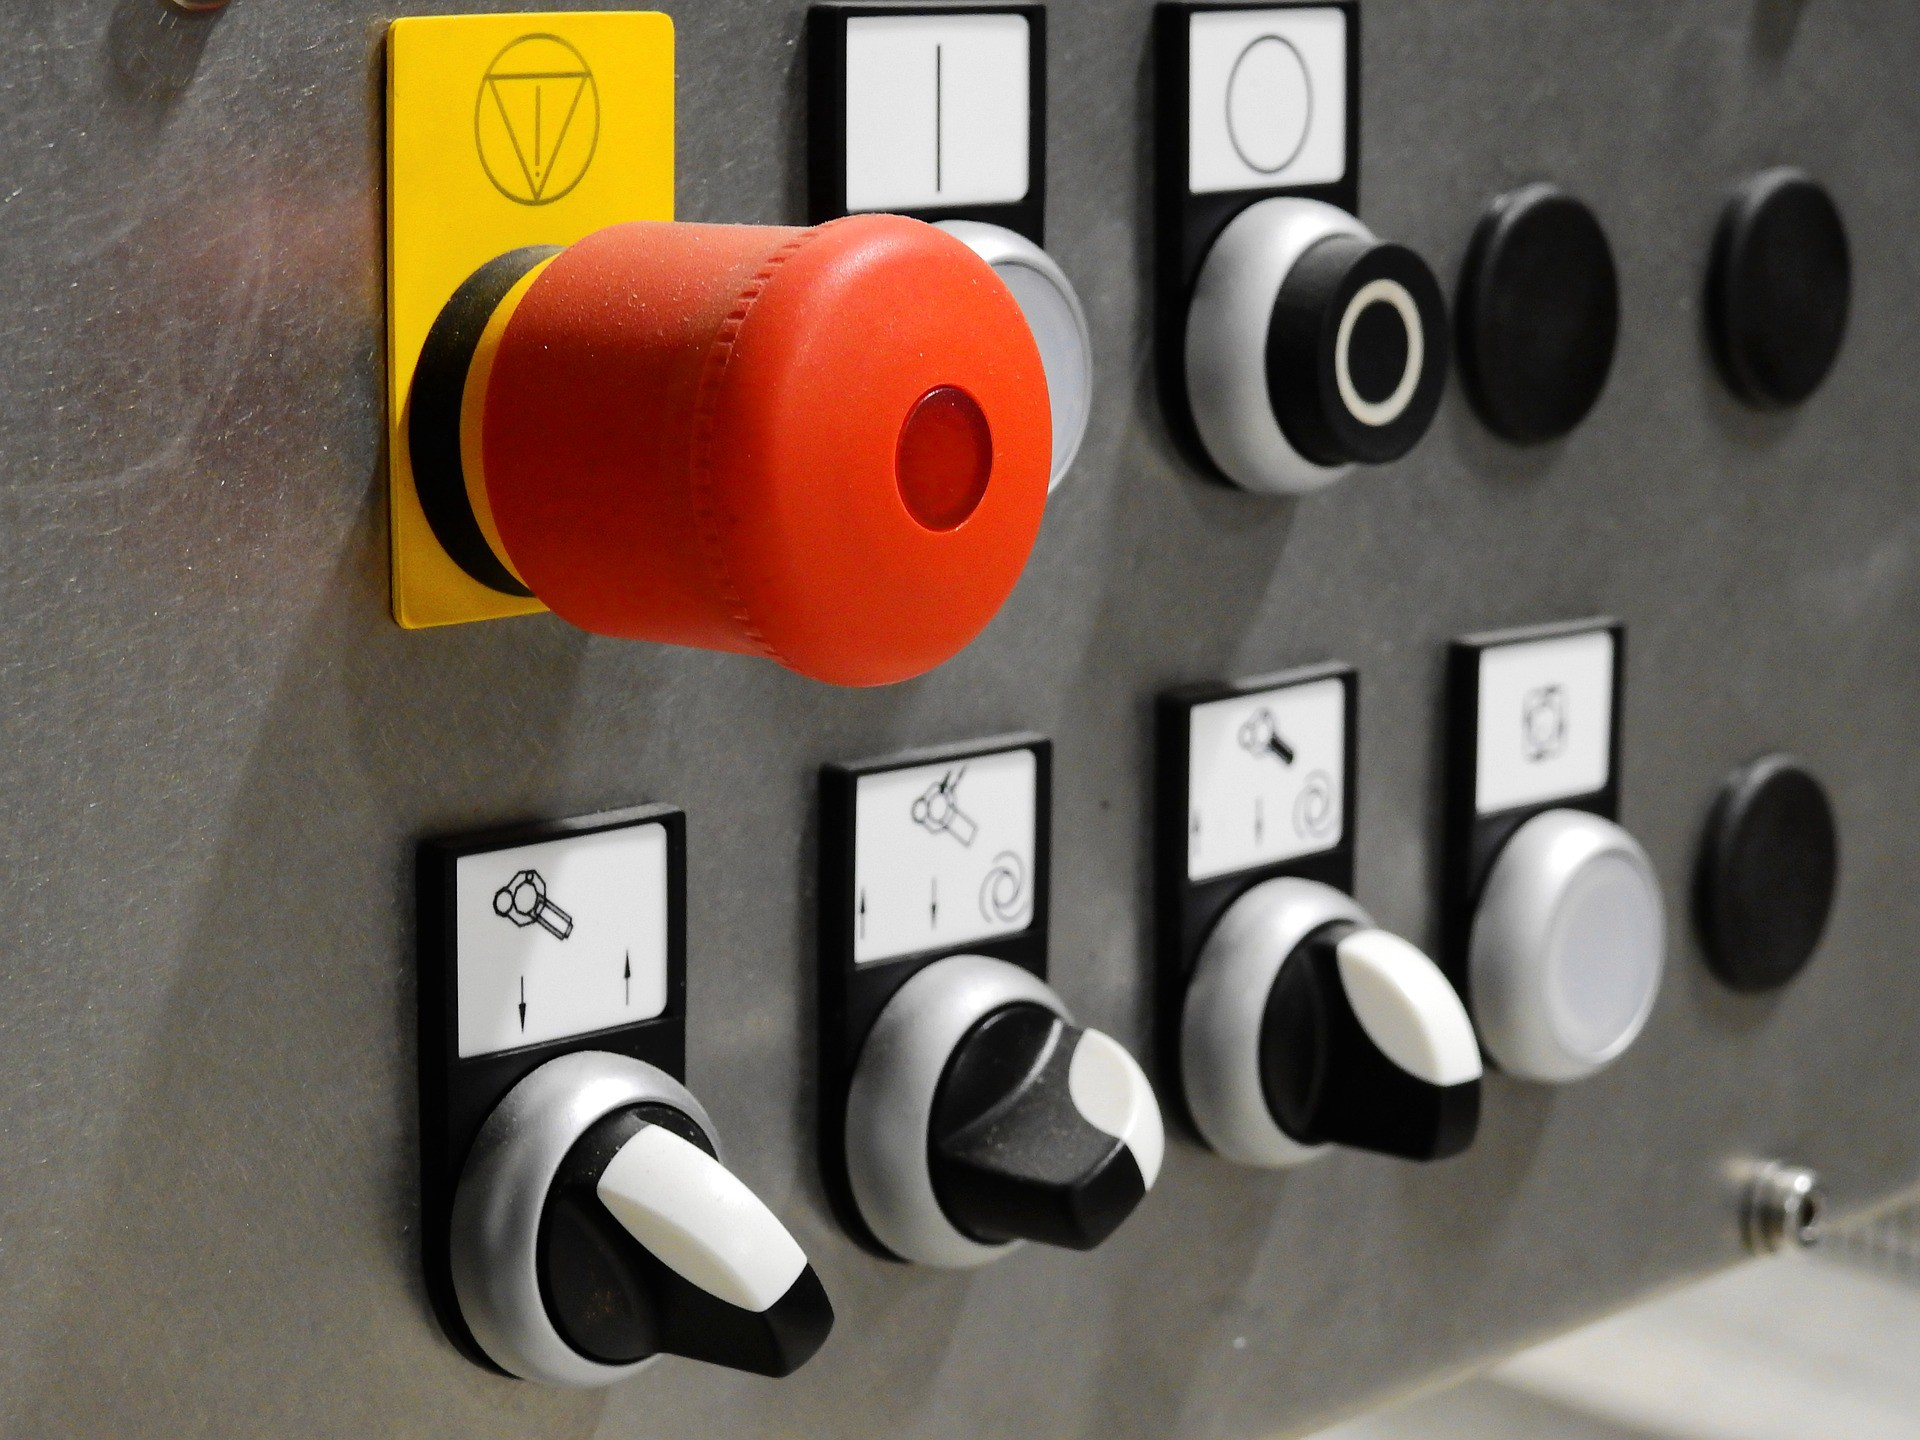 control panel with switches and a big red button